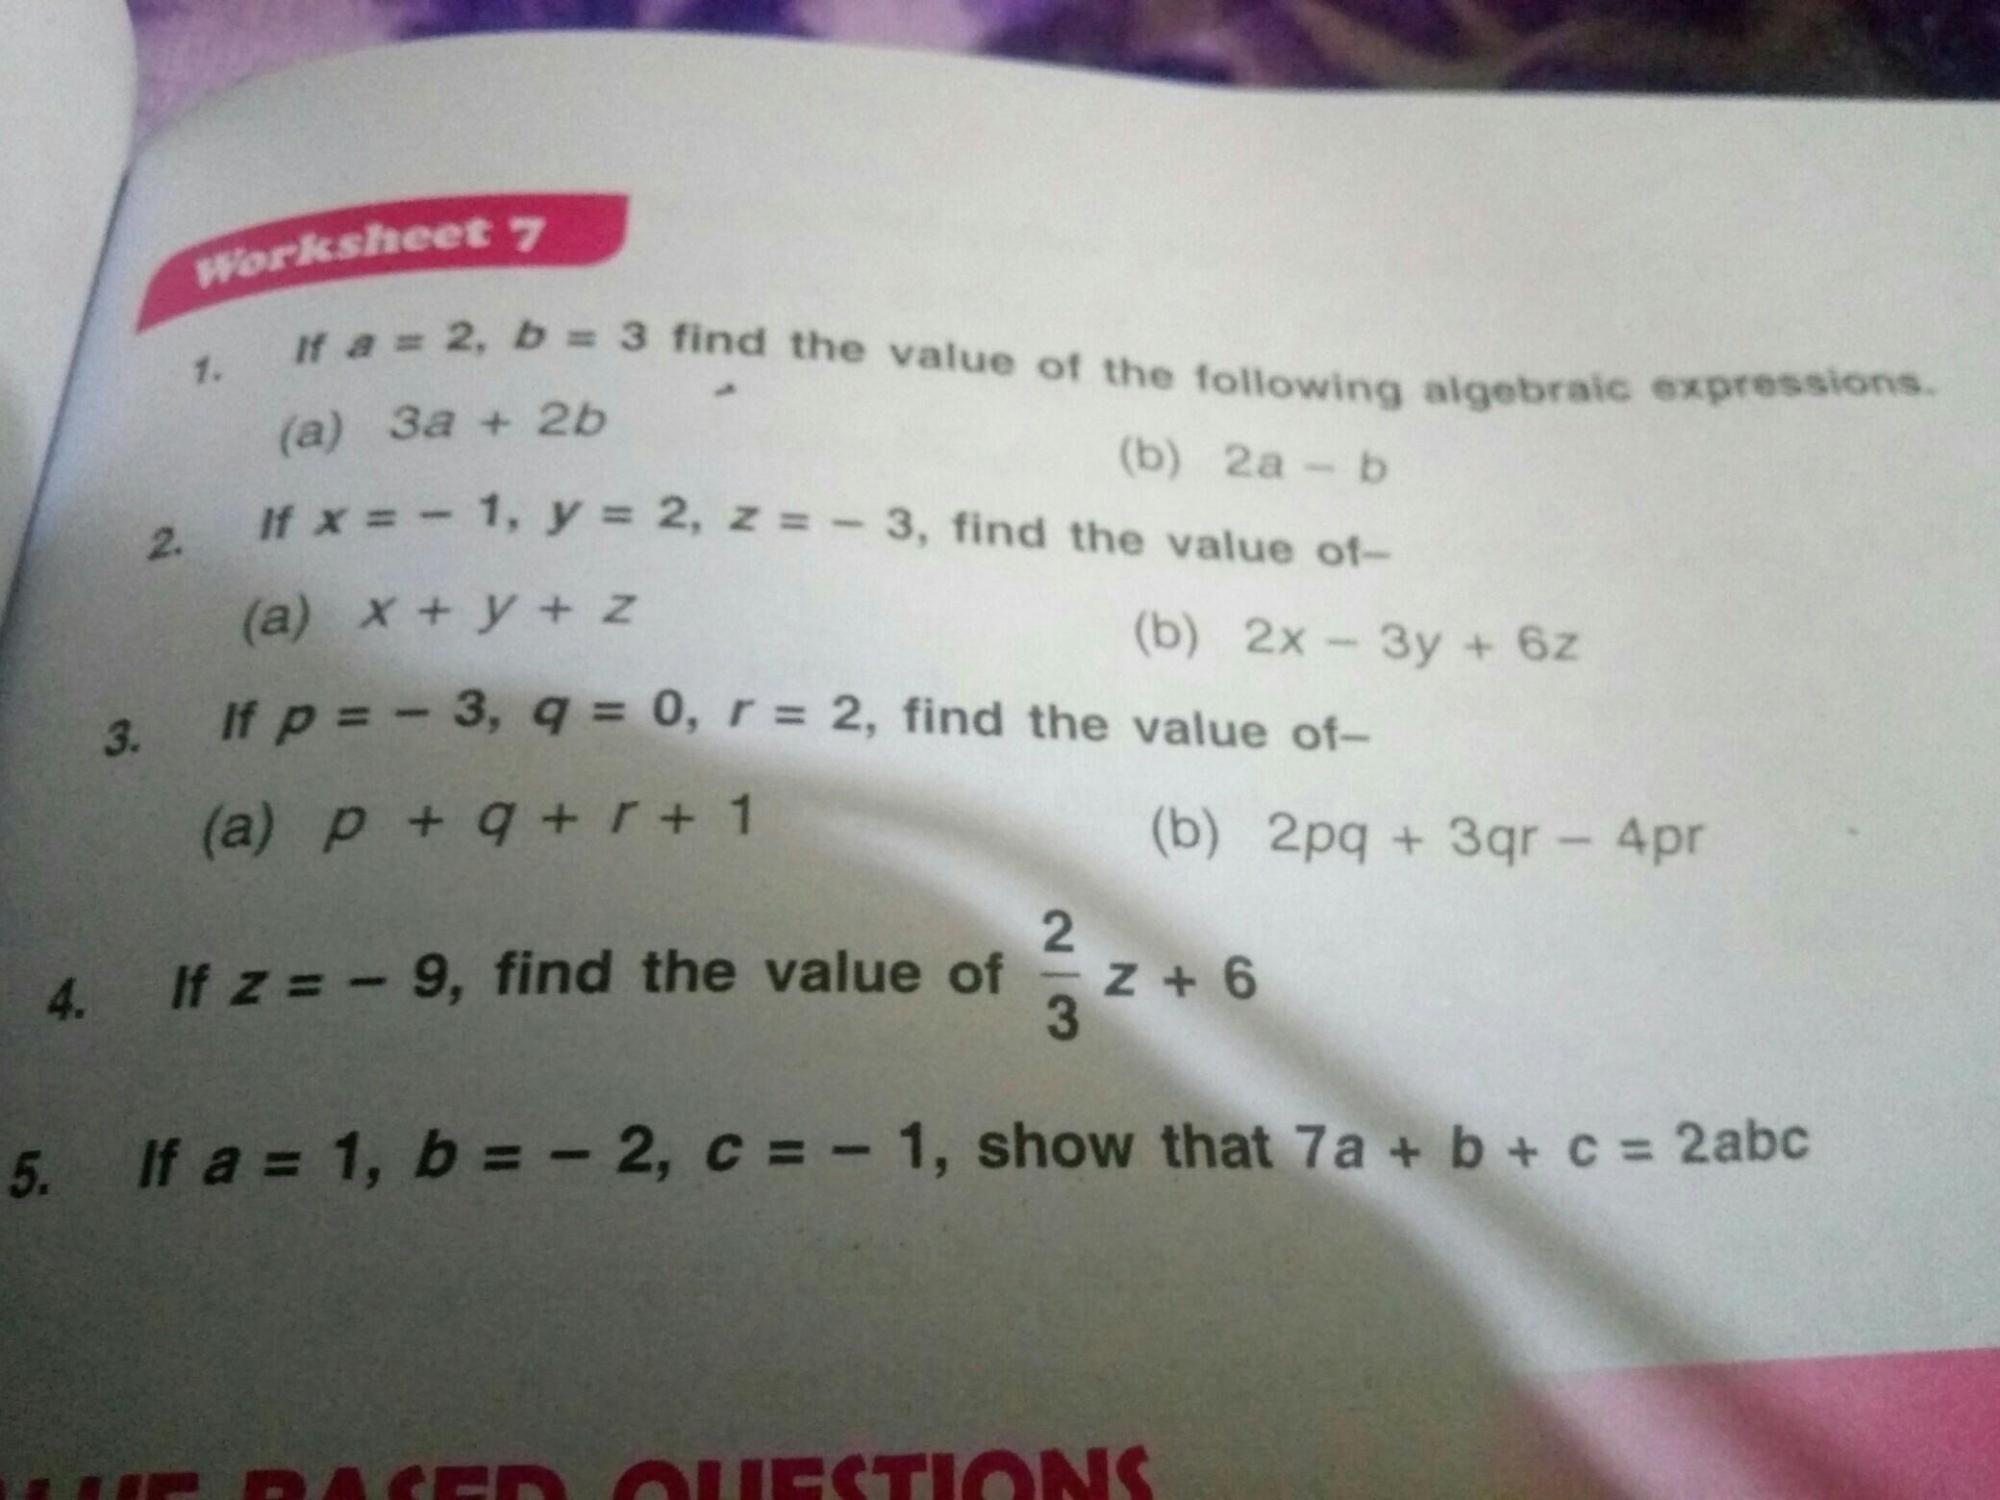 hight resolution of if a is equal to 1 b is equal to minus 2 C is equal to -1 show that 7 a + b  + C is equal to two ABC - Brainly.in